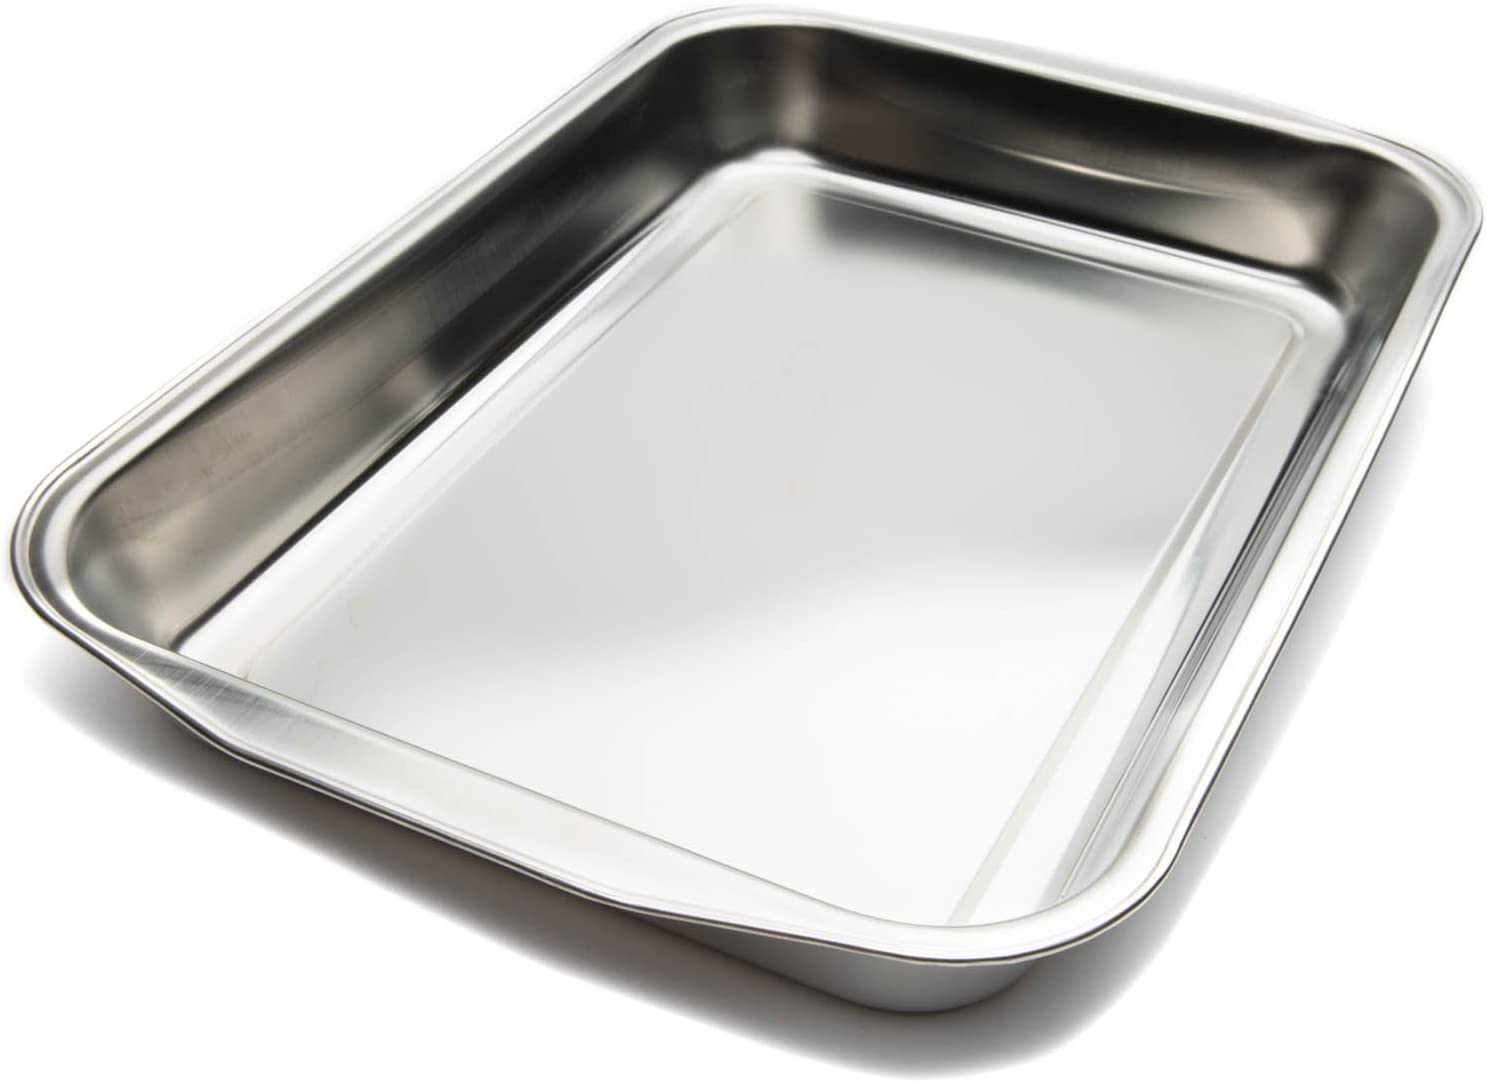 Fox Run Roasting Stainless Steel 14.5 Baking Max 49% Popular products OFF Pans inches